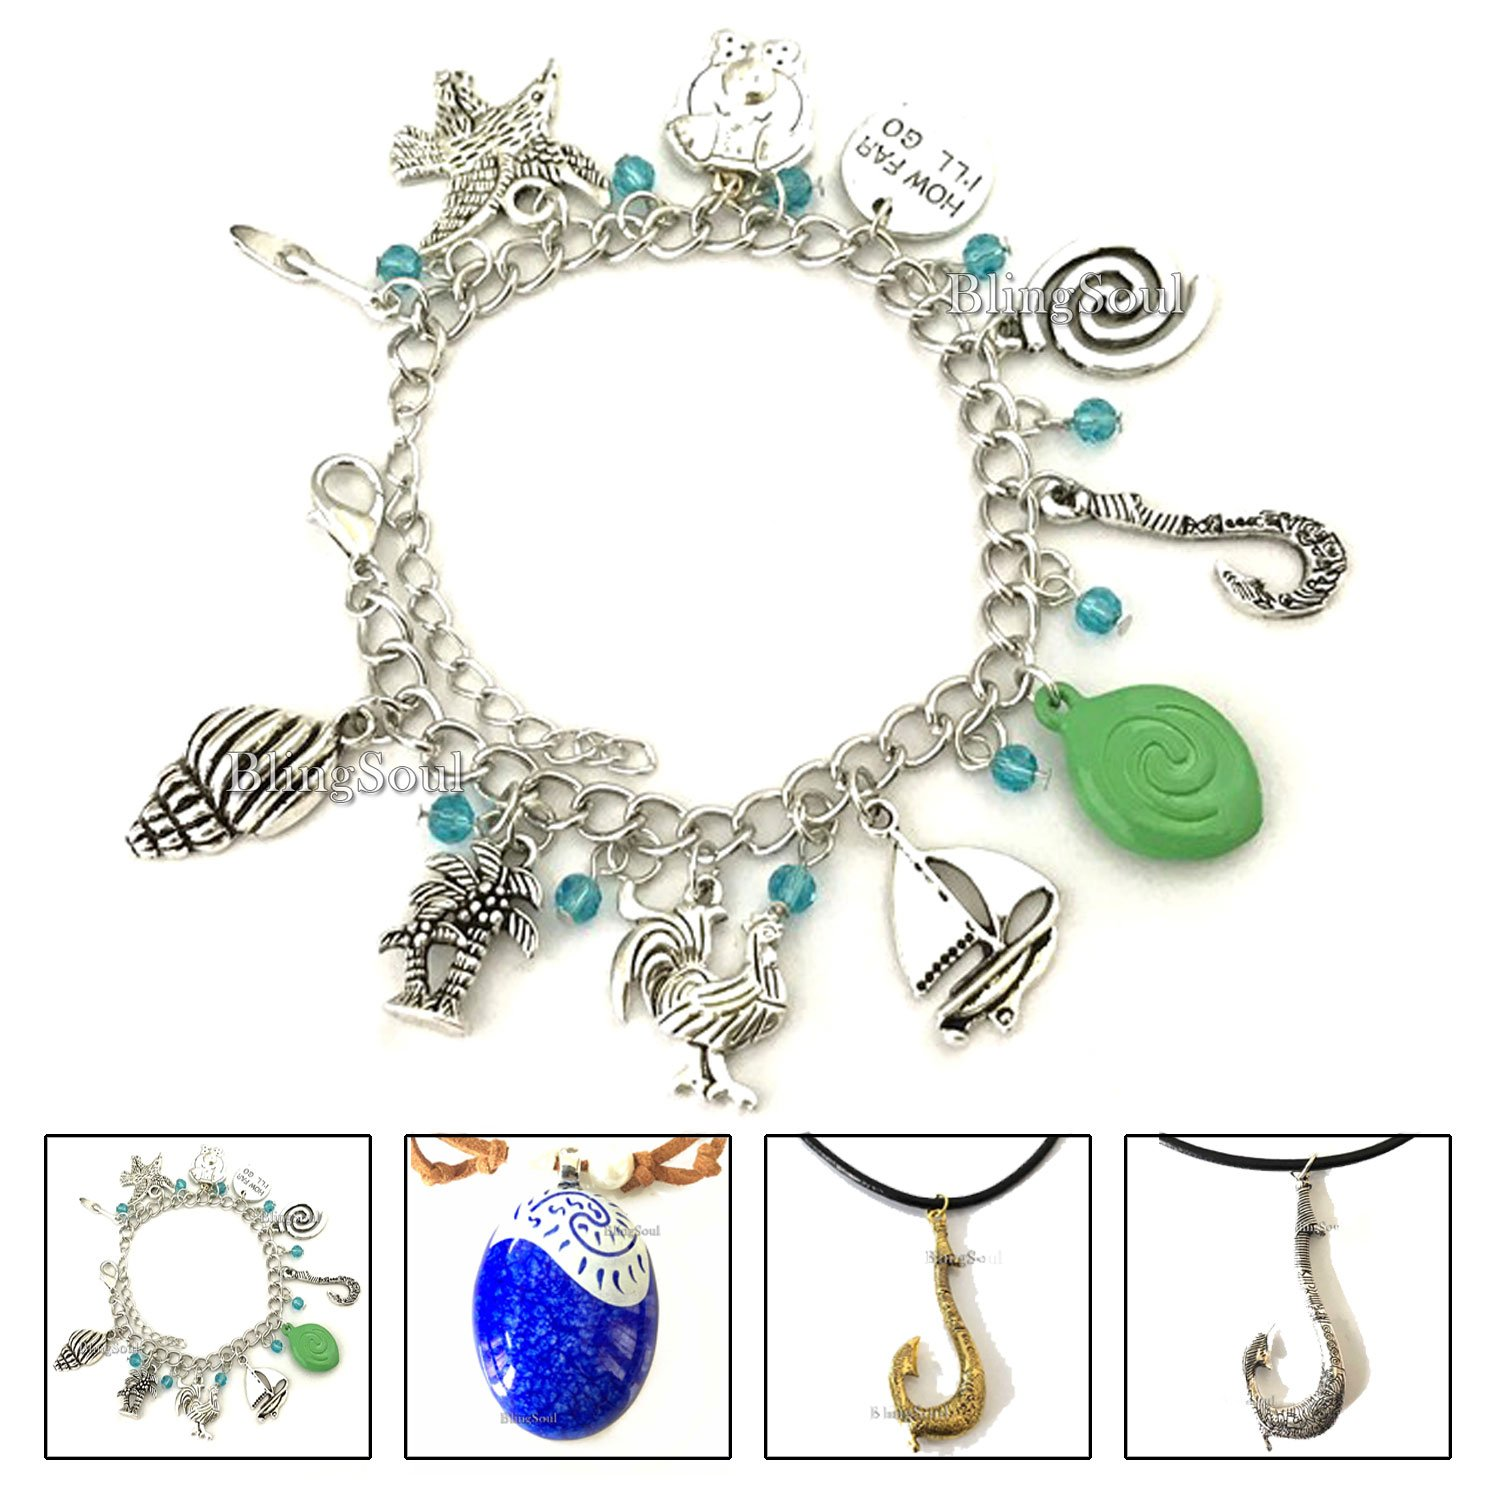 BlingSoul Maui Moana Charm Bracelet - Maui Hook Jewelry Moana Gift Merchandise for Women by BlingSoul (Image #1)